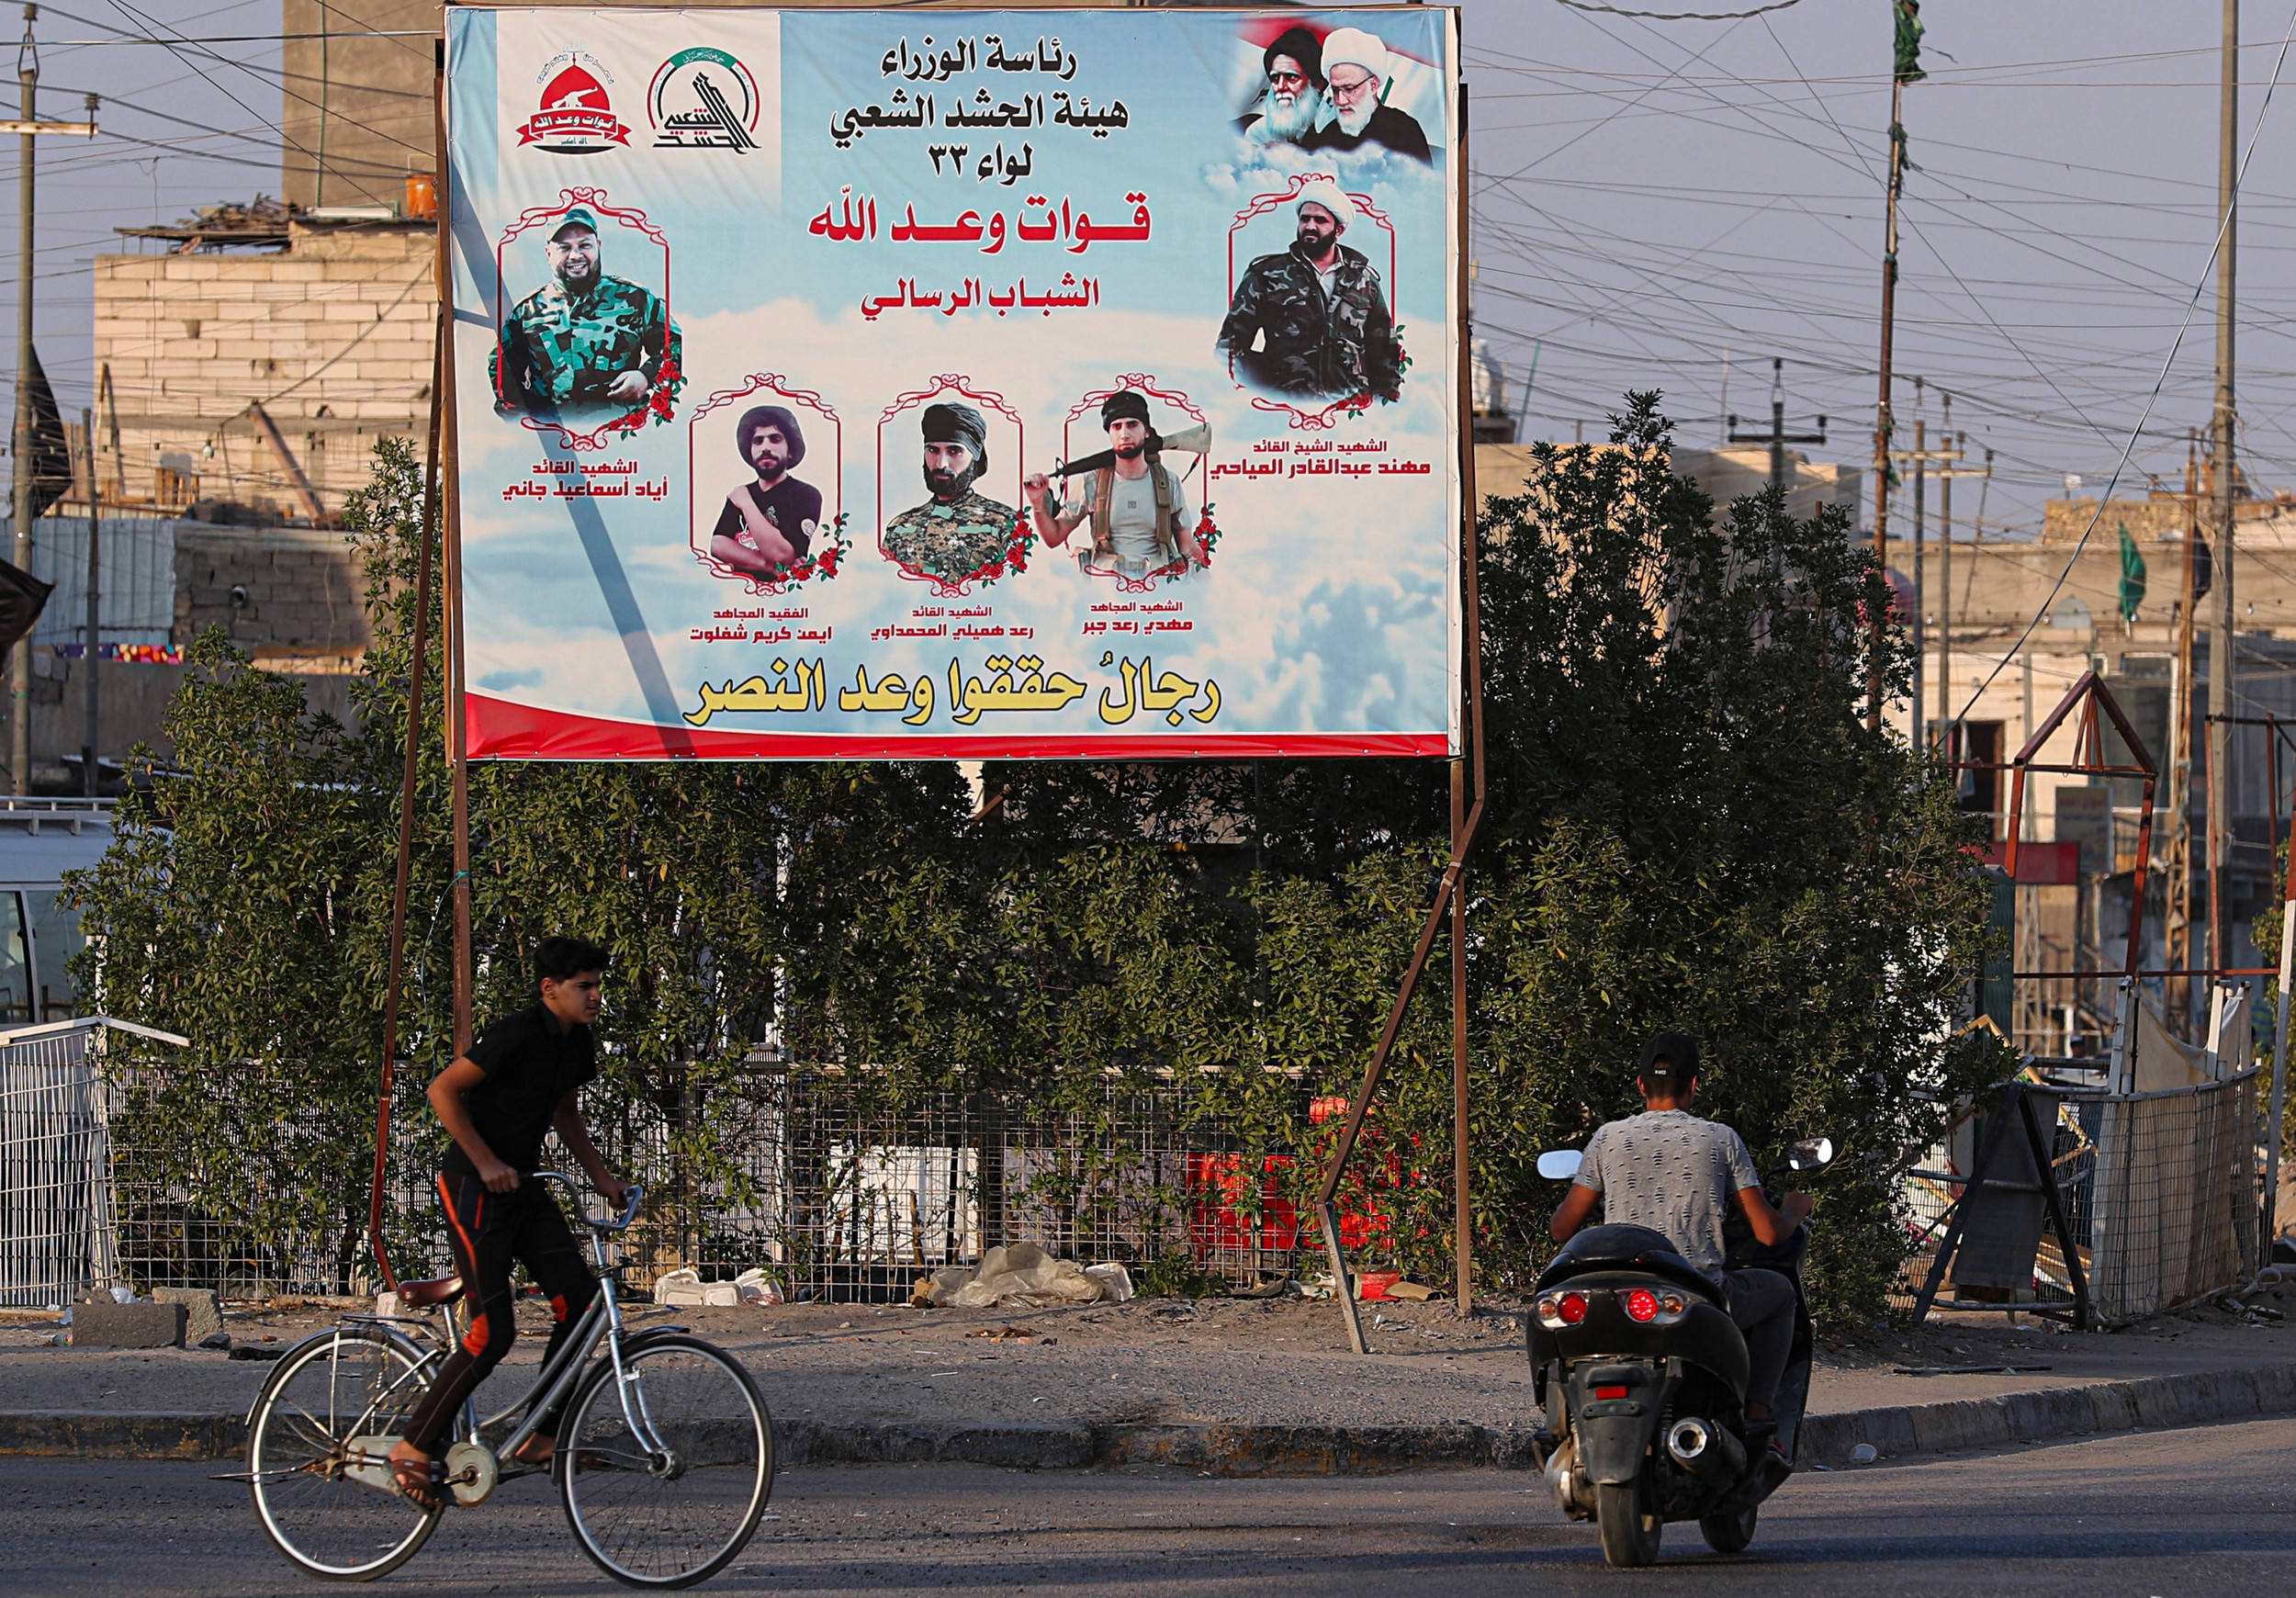 Iraq's stability on the line as US, Iran tensions soar